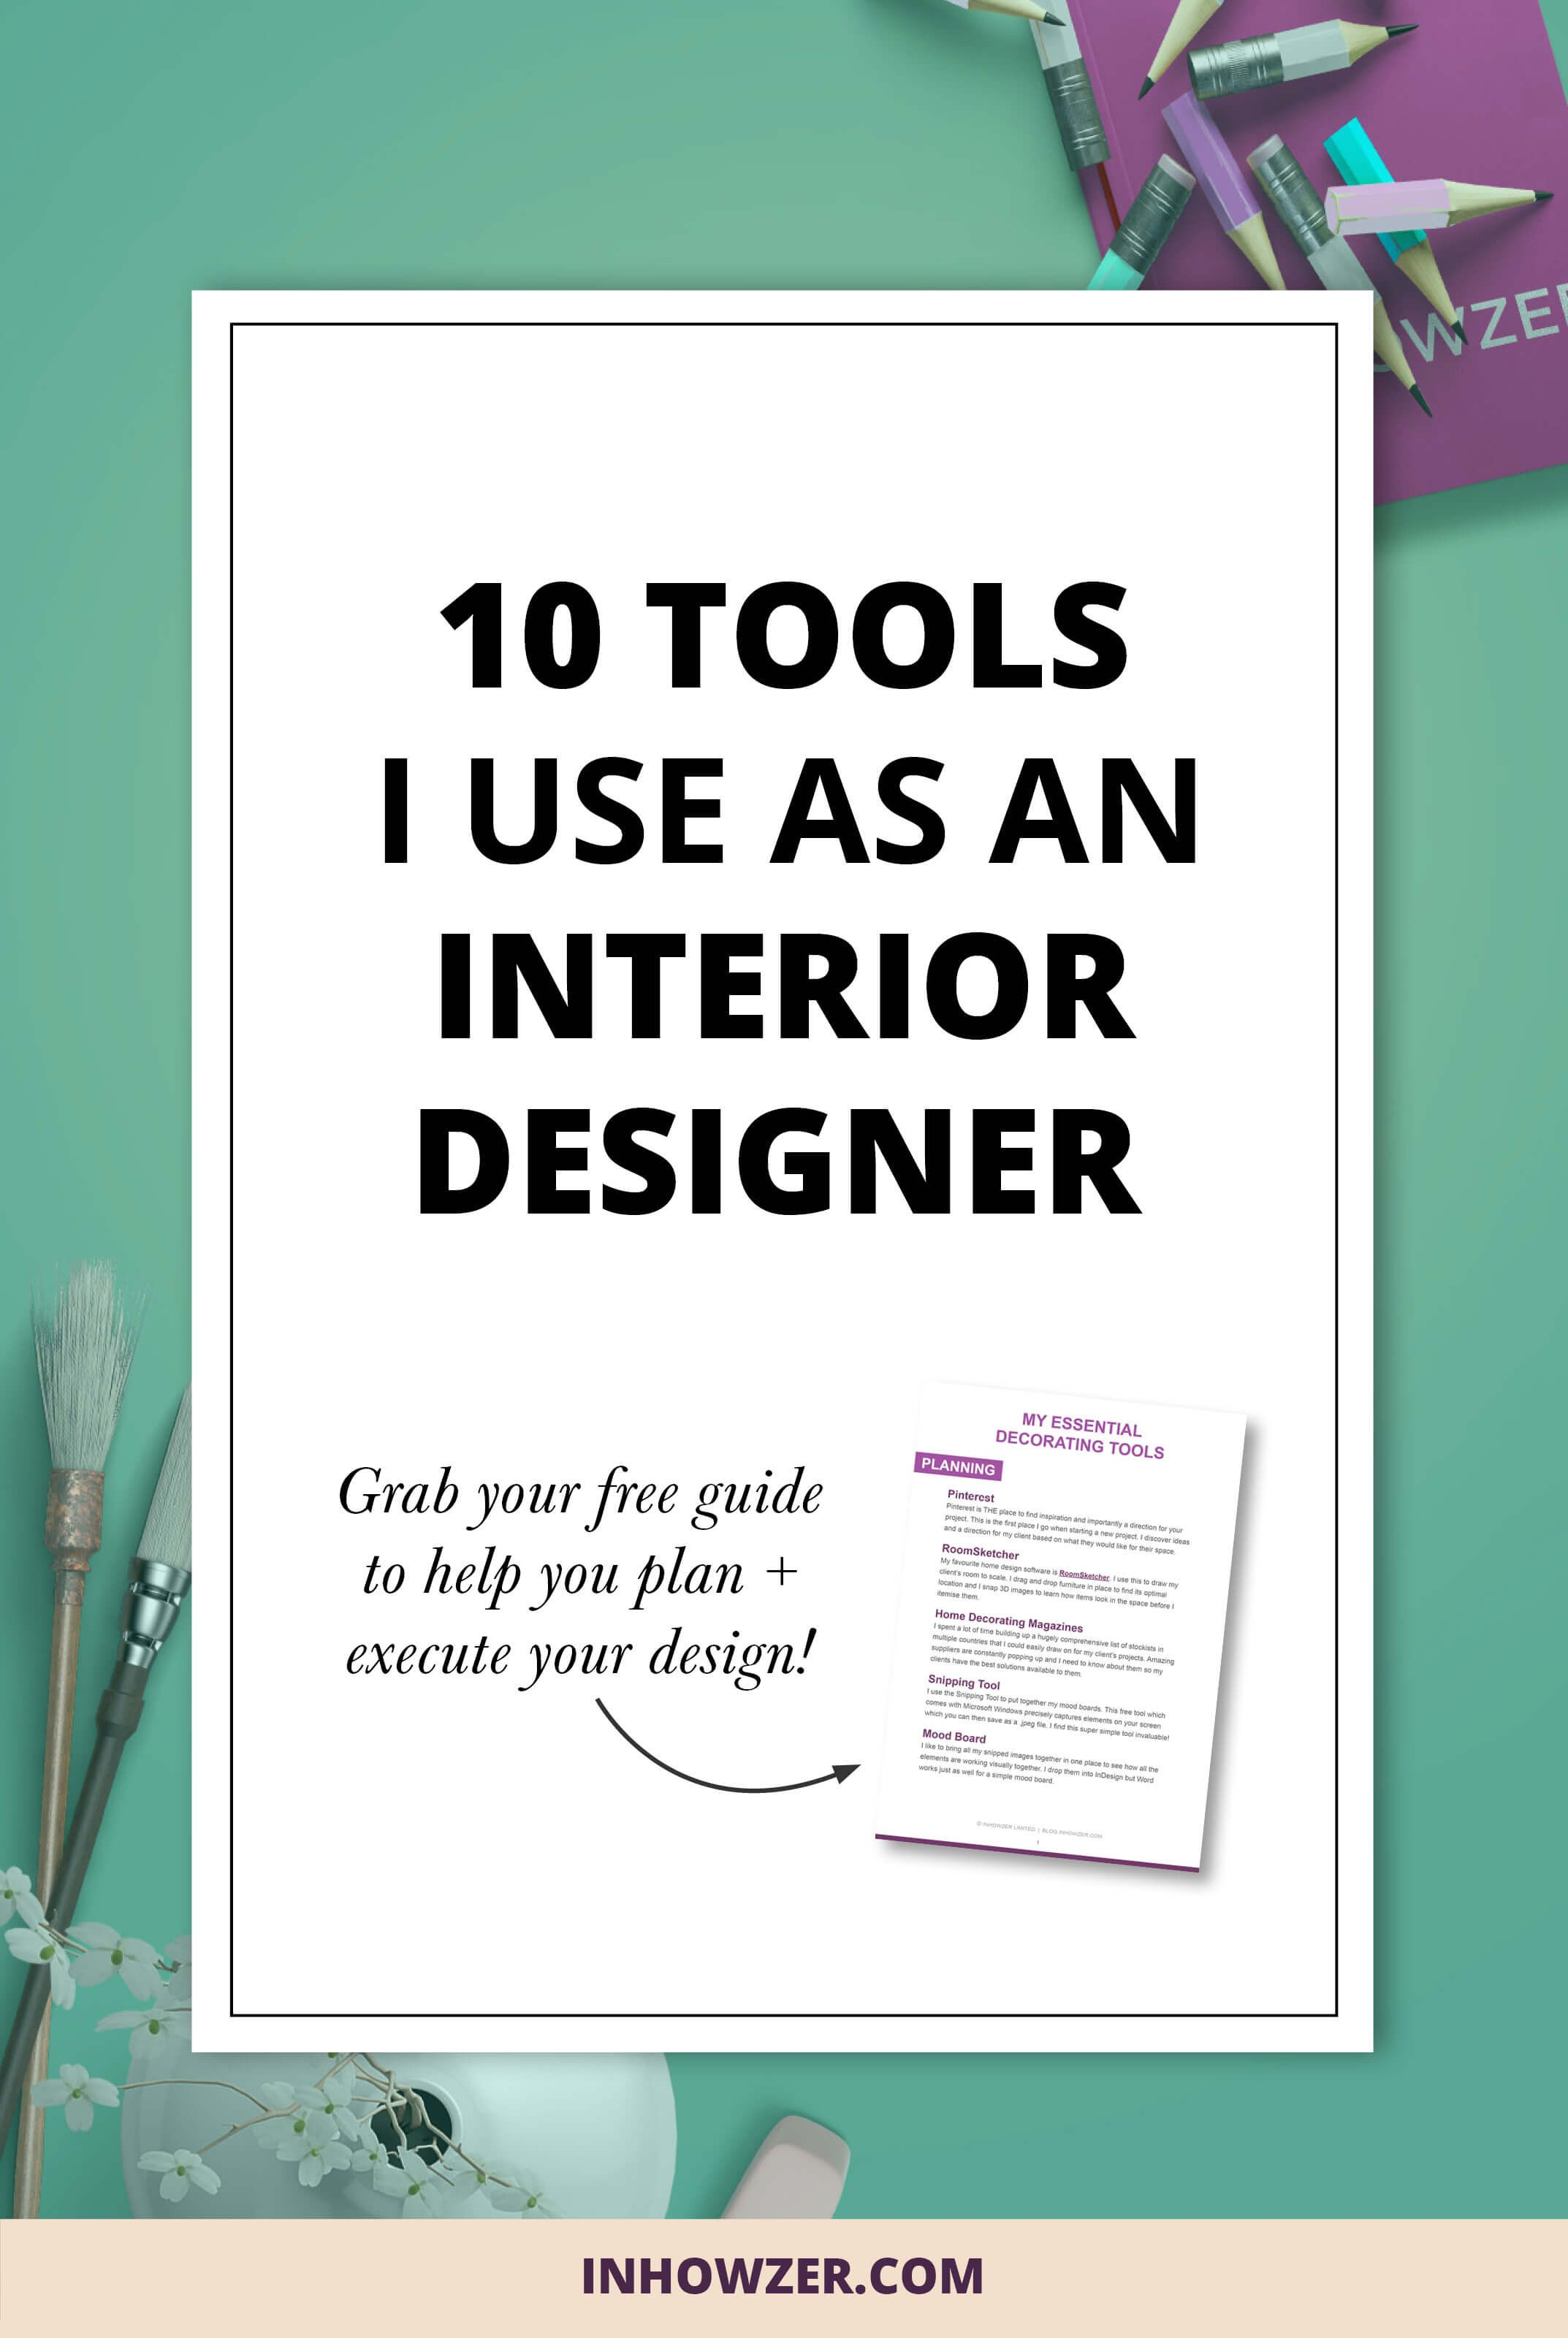 I Share With You The 10 Tools I Use As An Interior Designer And